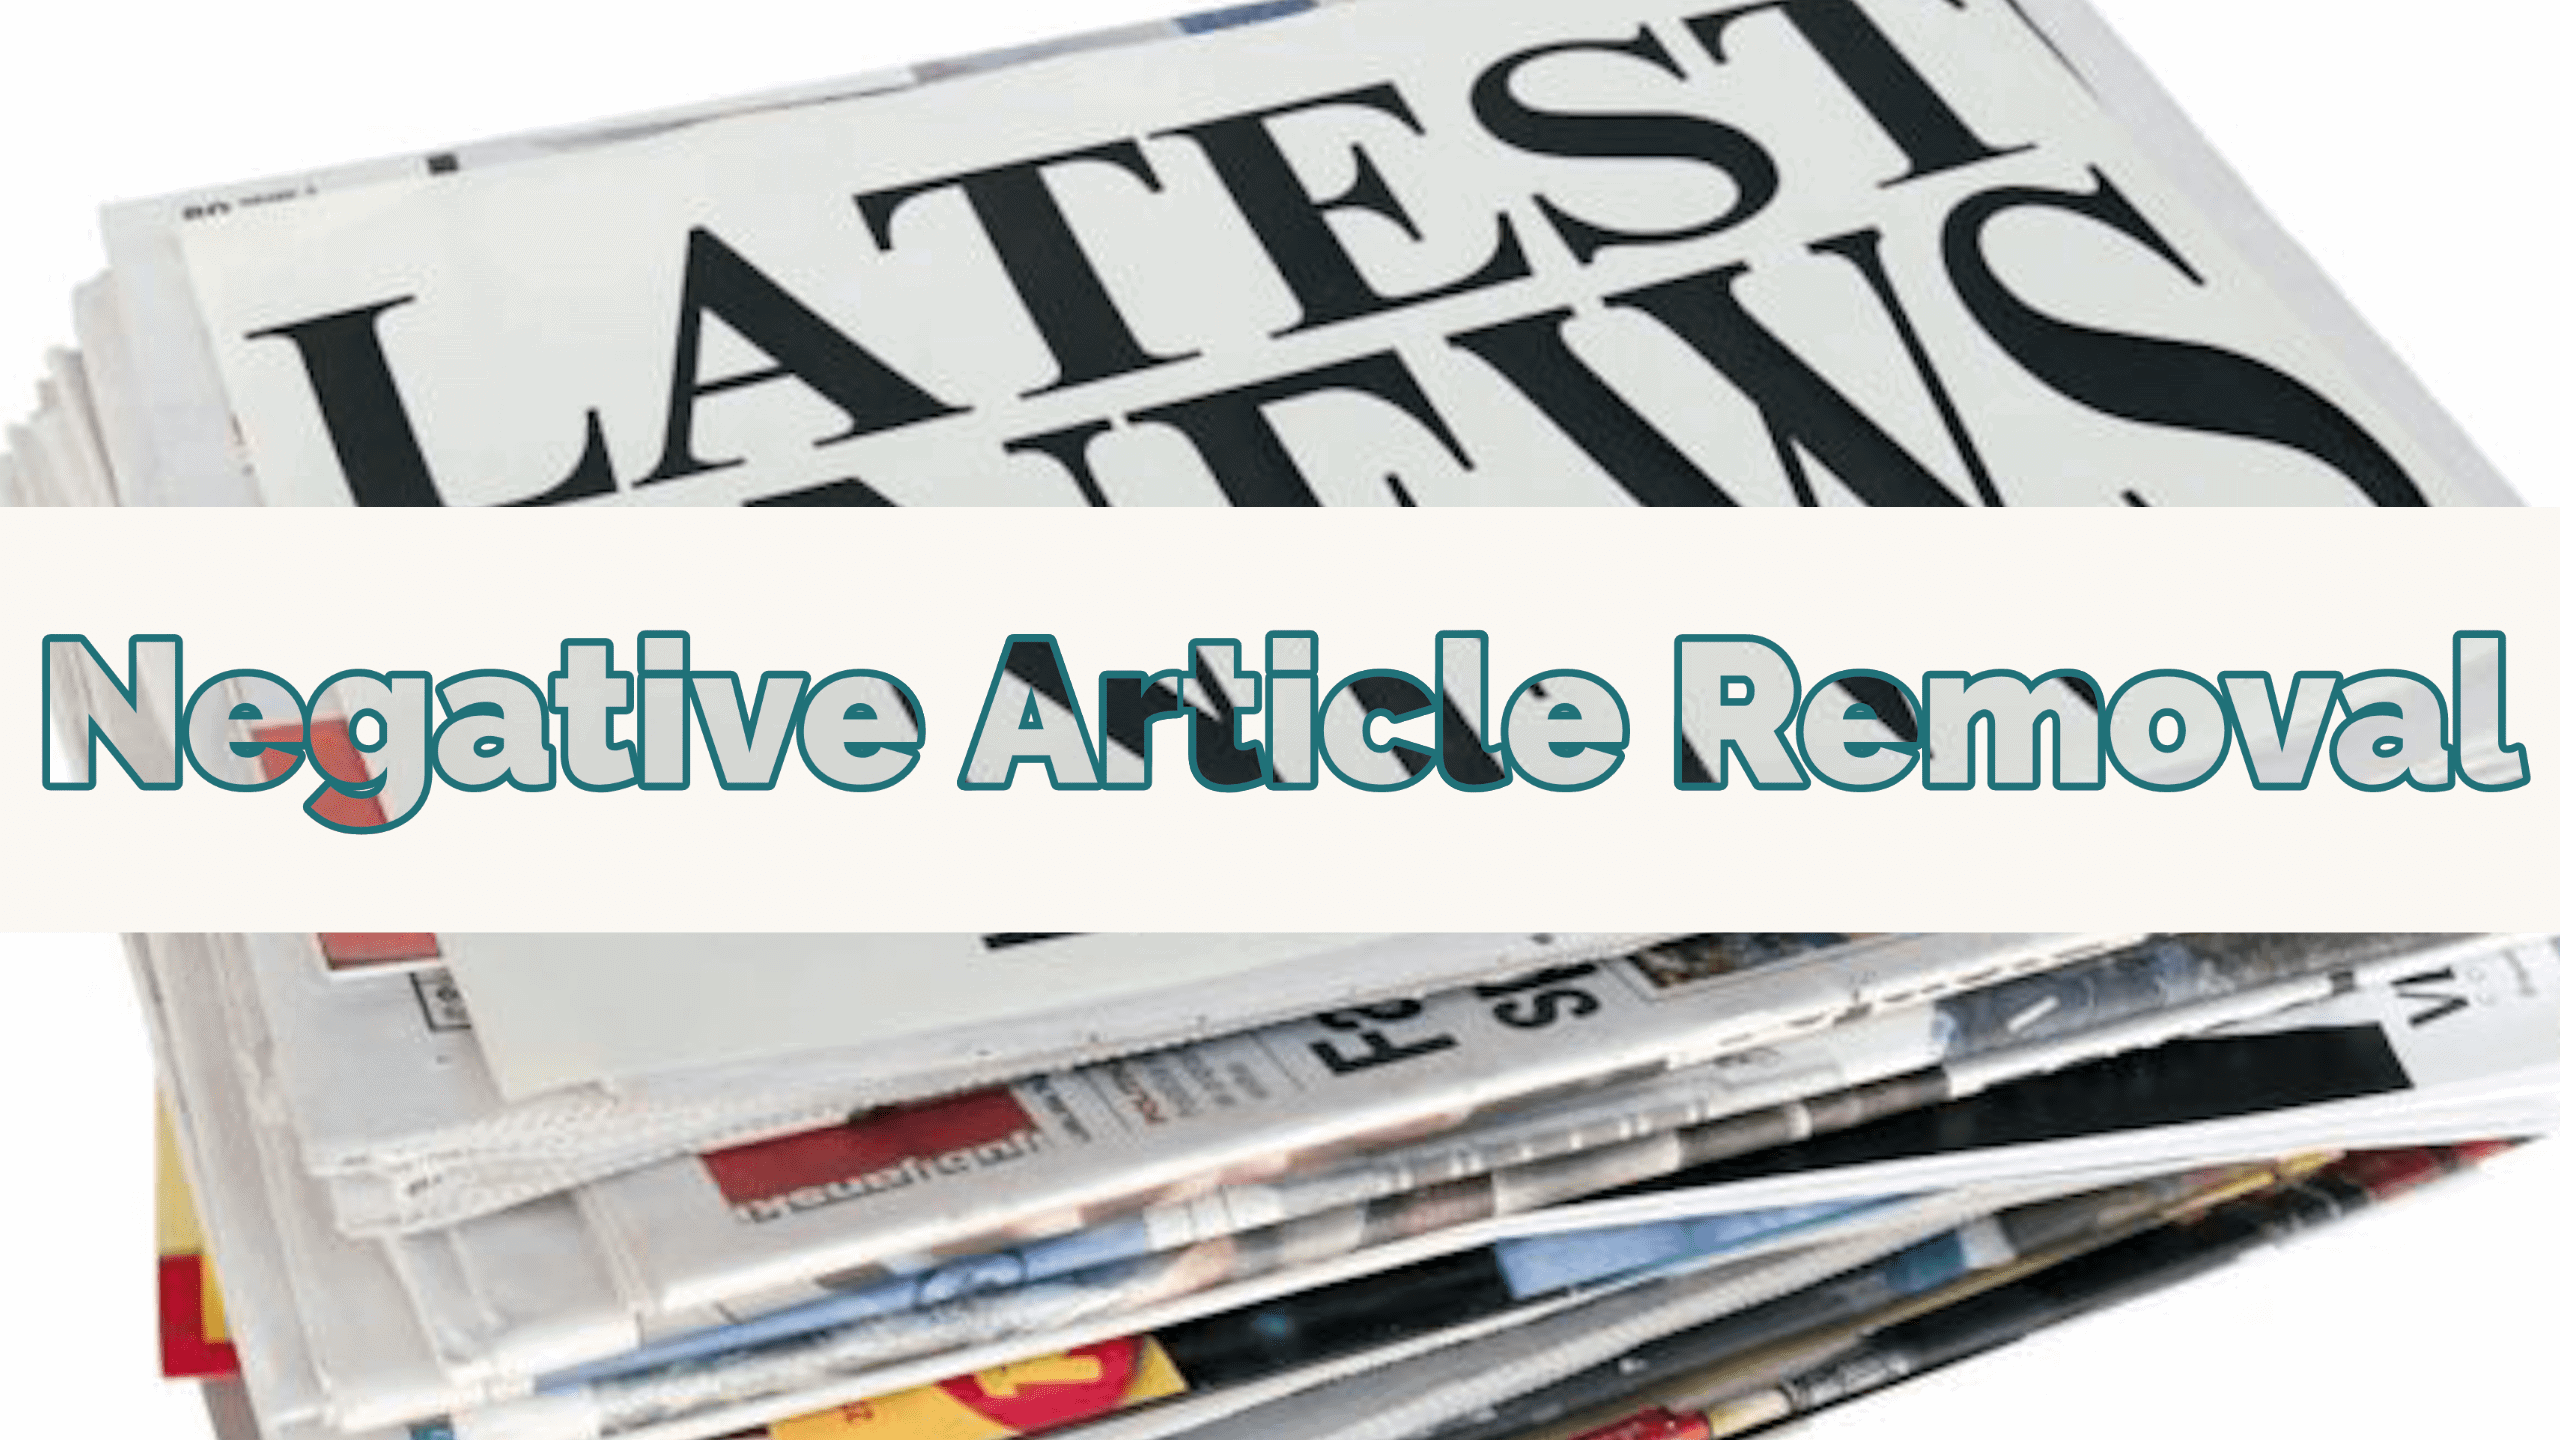 negative article removal